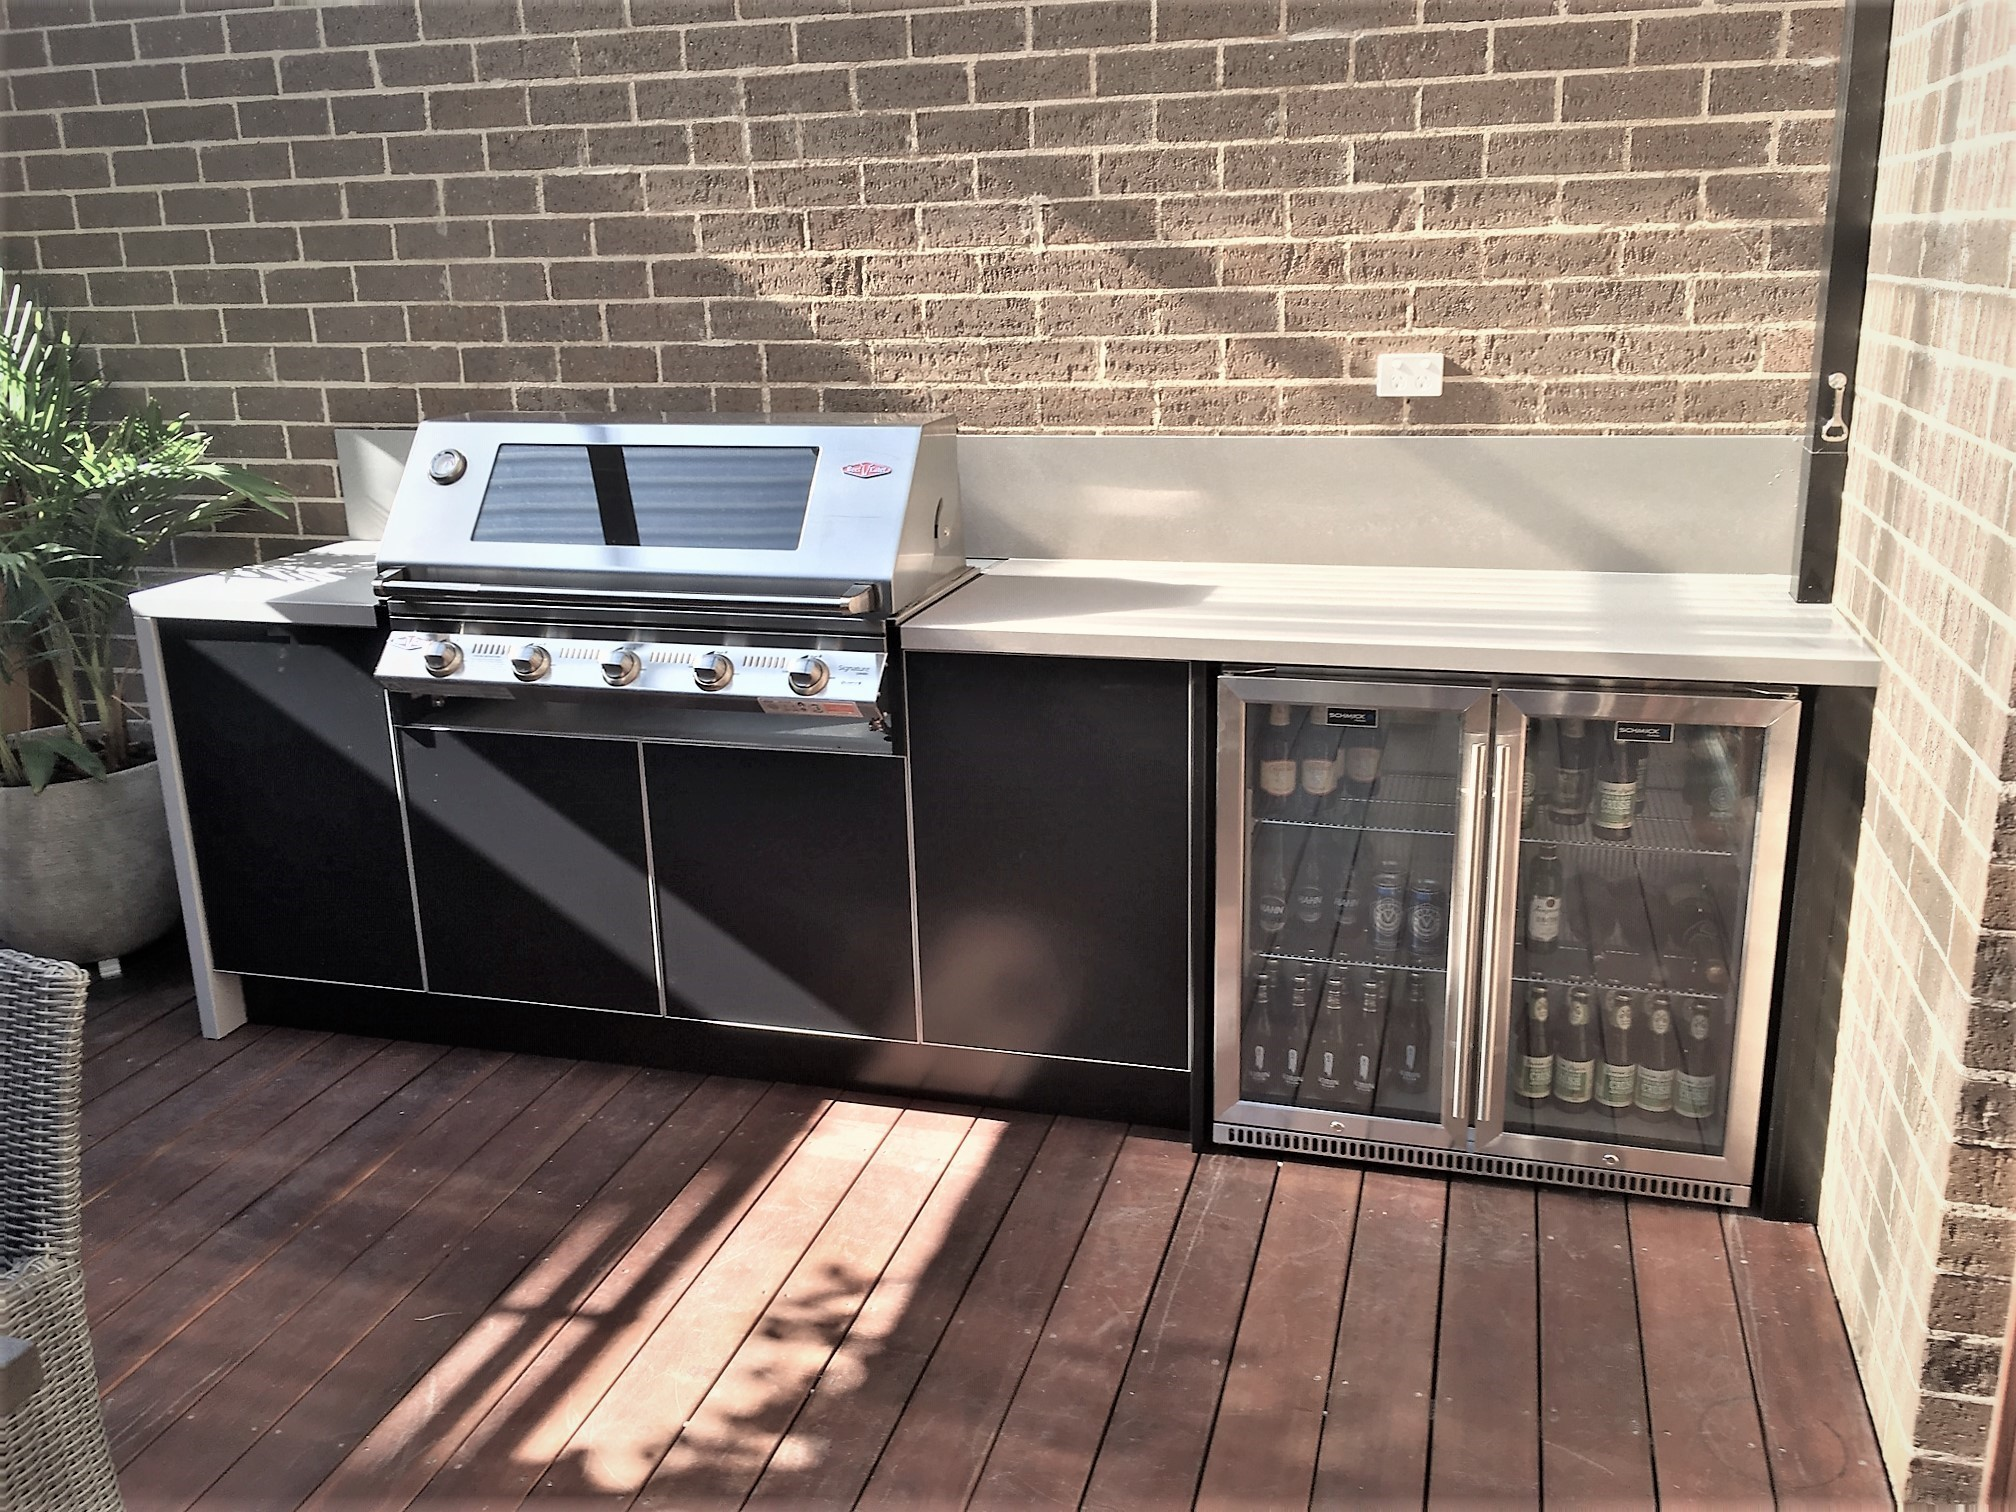 Beefeater Signature 3000S 5 Bnr BBQ with Matte Black cabinets and Dekton Sirocco benchtops 431-2